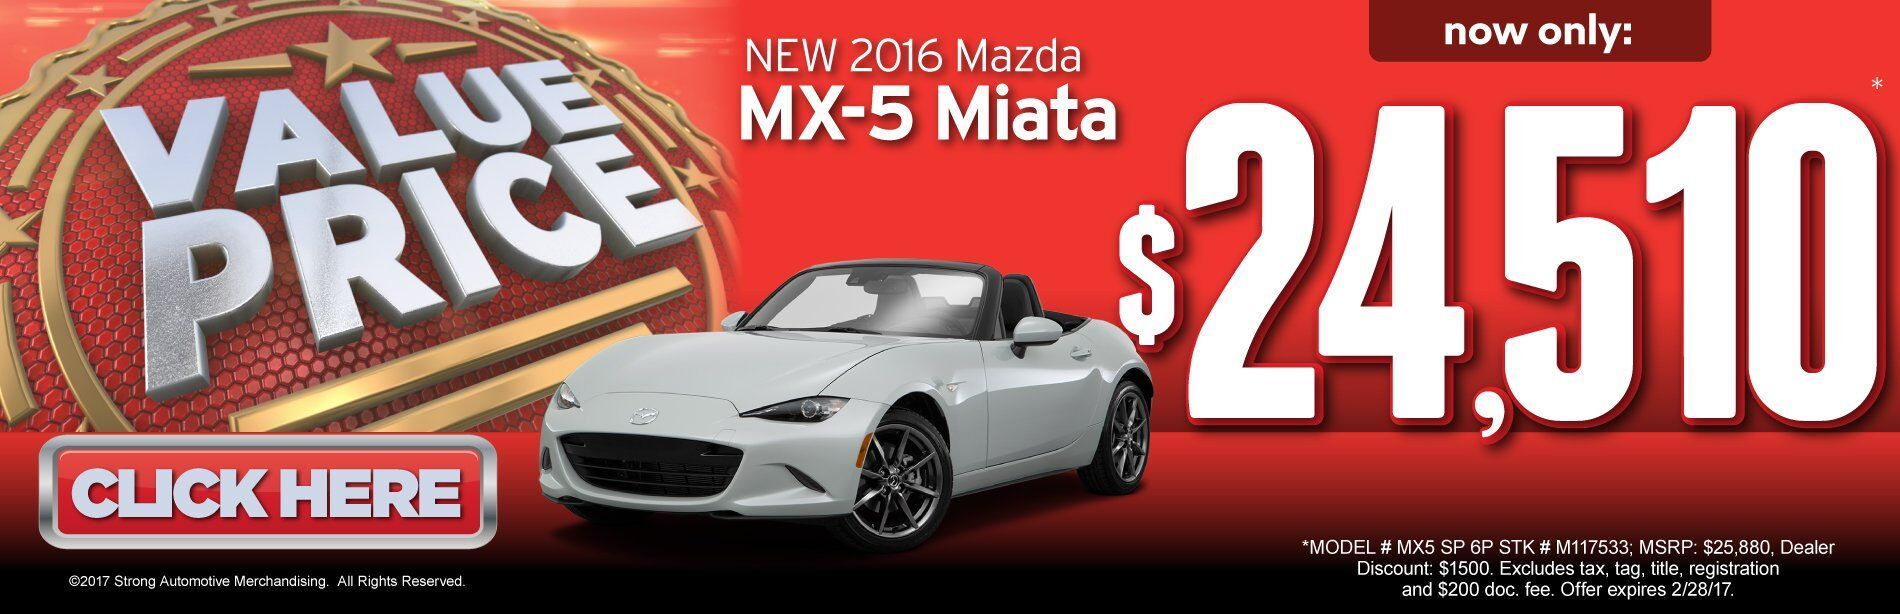 Value Price Mazda MX-5 Miata